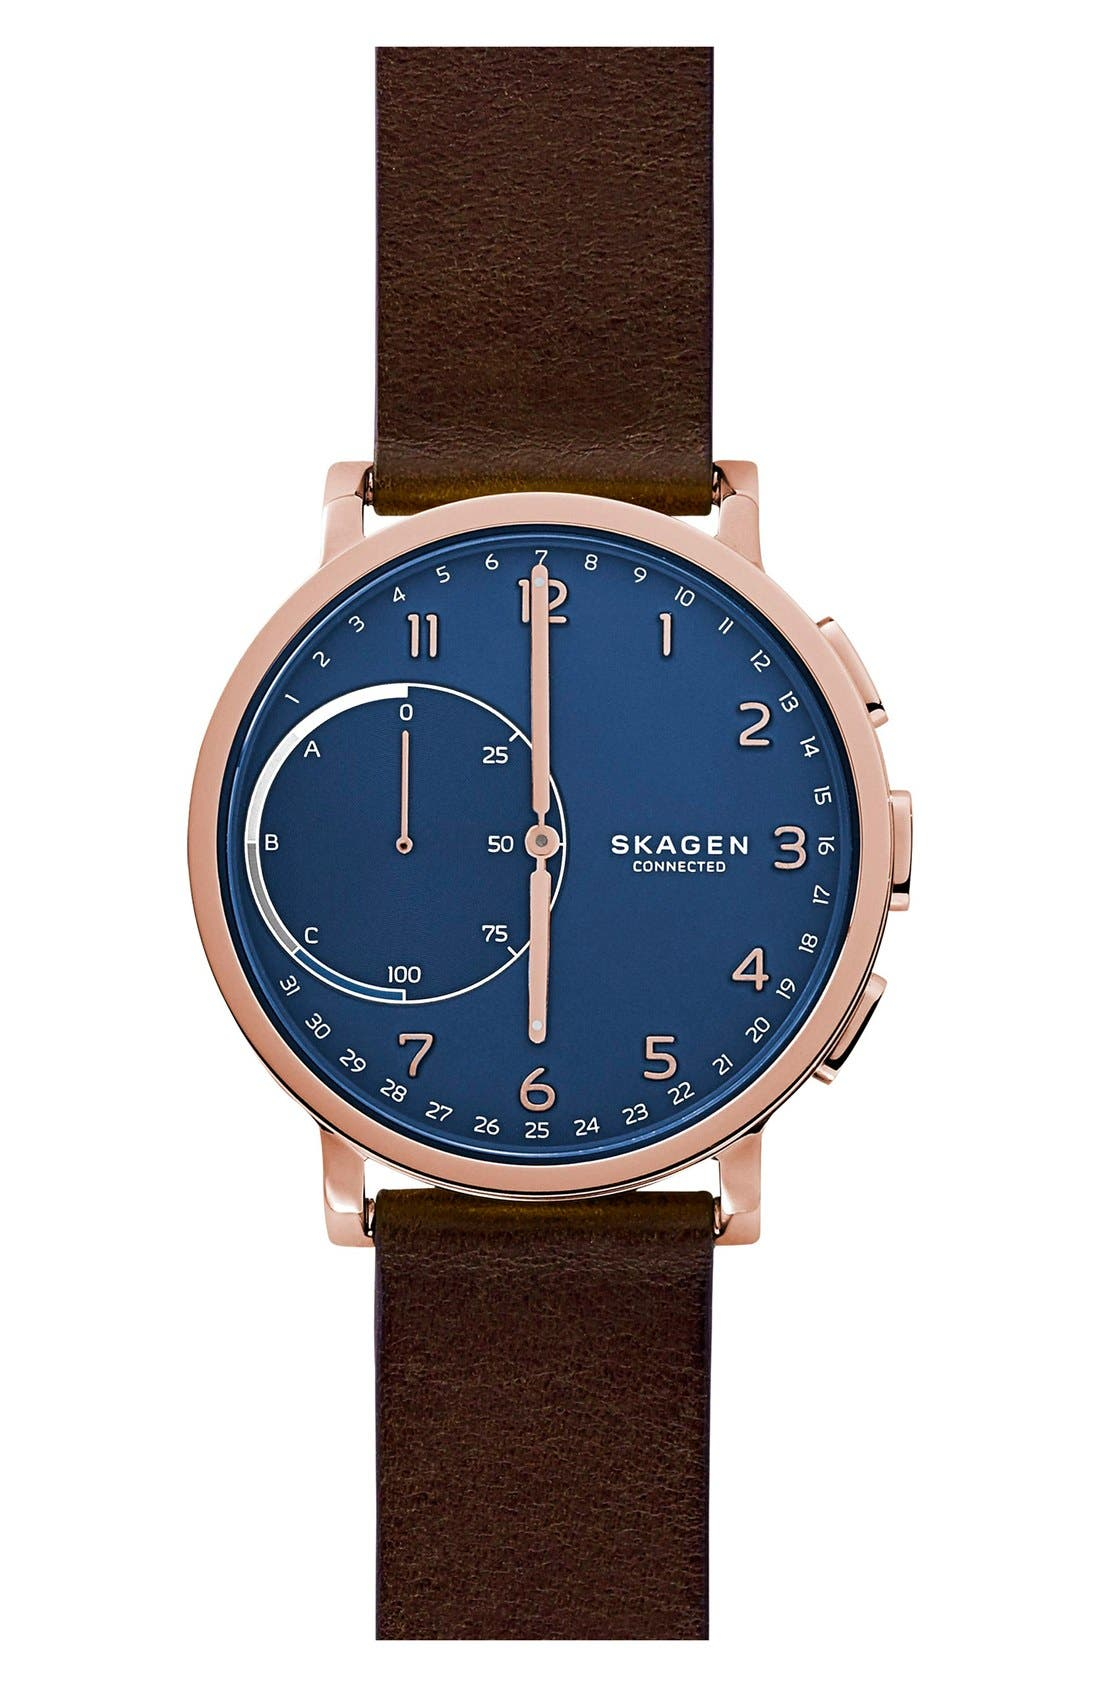 Skagen Hagen Connected Hybrid Smart Watch, 42mm